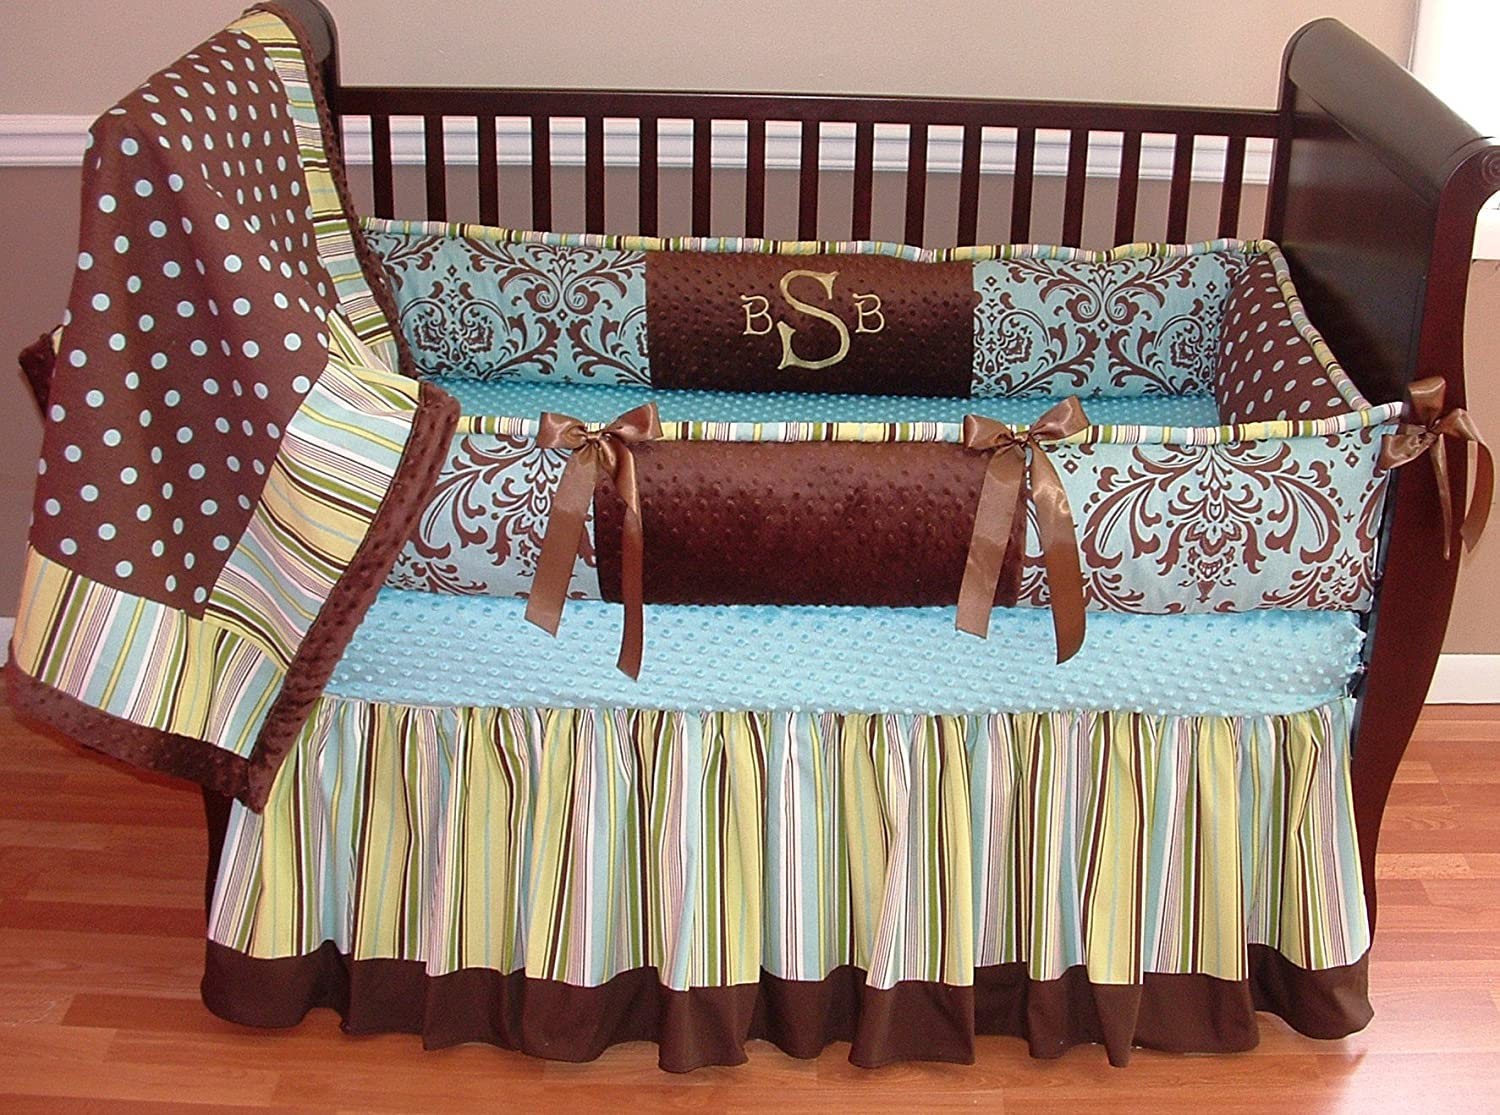 Modpeapod Blue & Brown Satin Breathable Baby Bedding Set